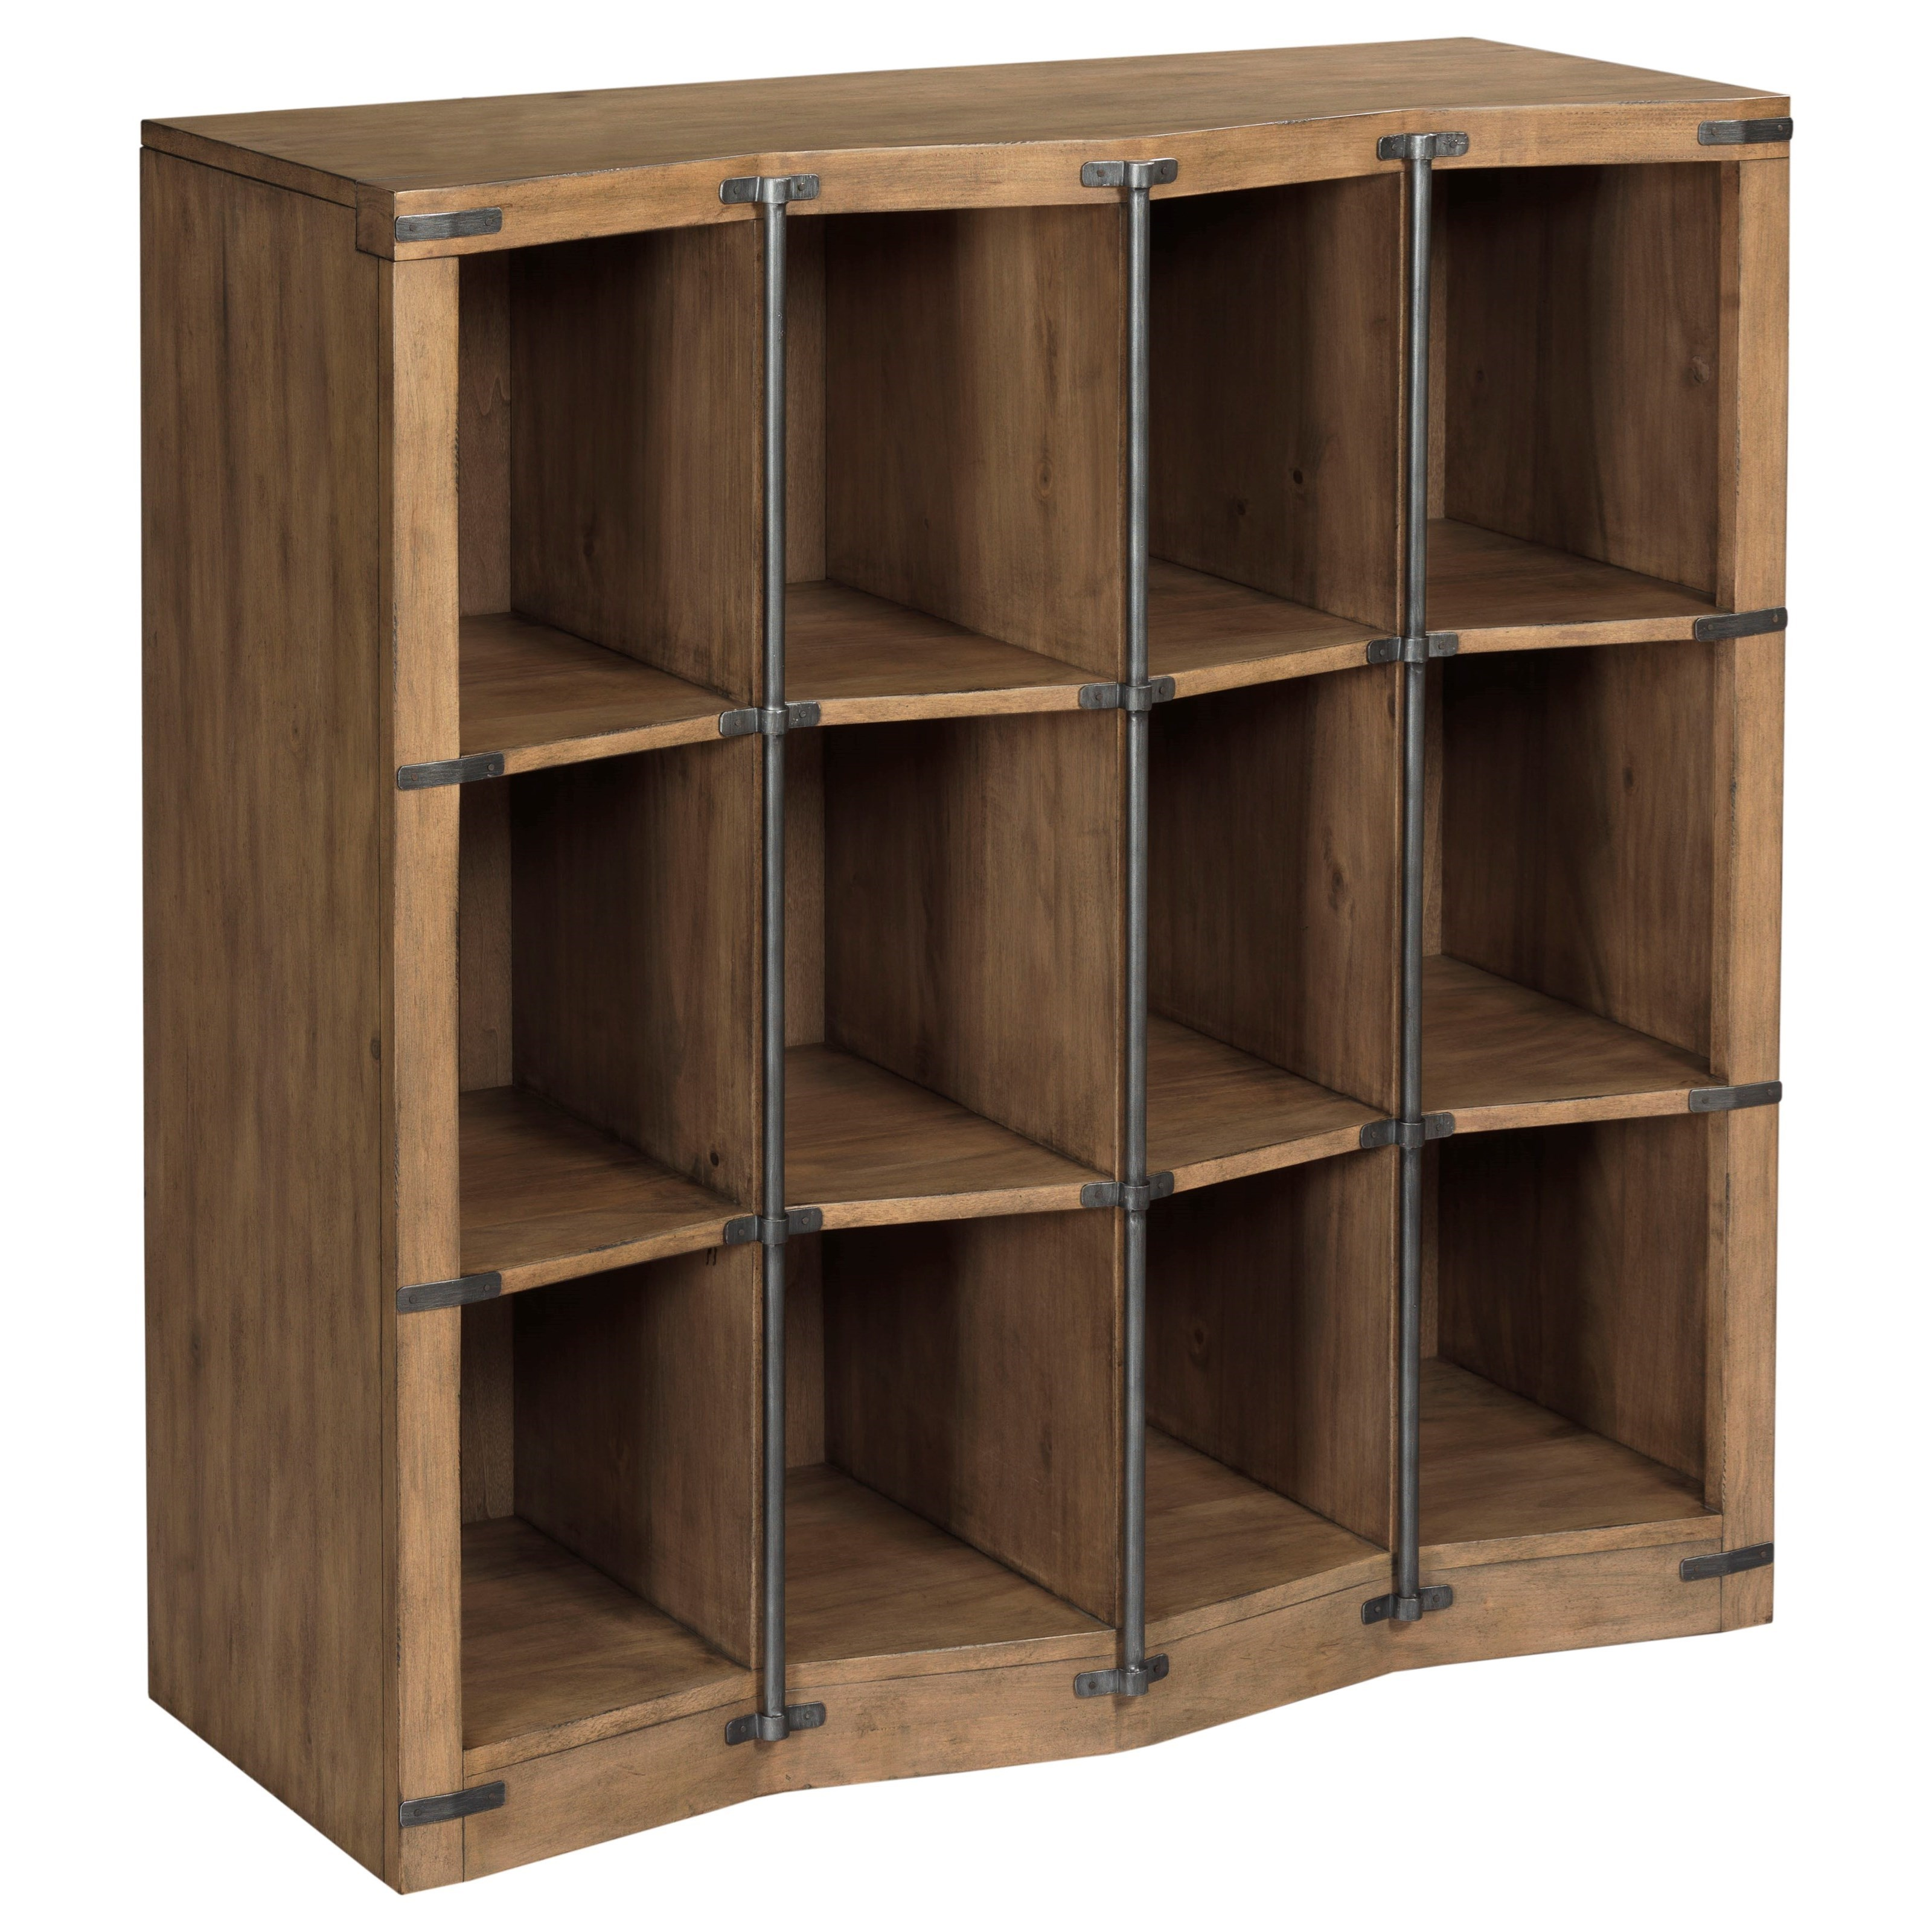 Modern Origins Bookcase by Hammary at Red Knot